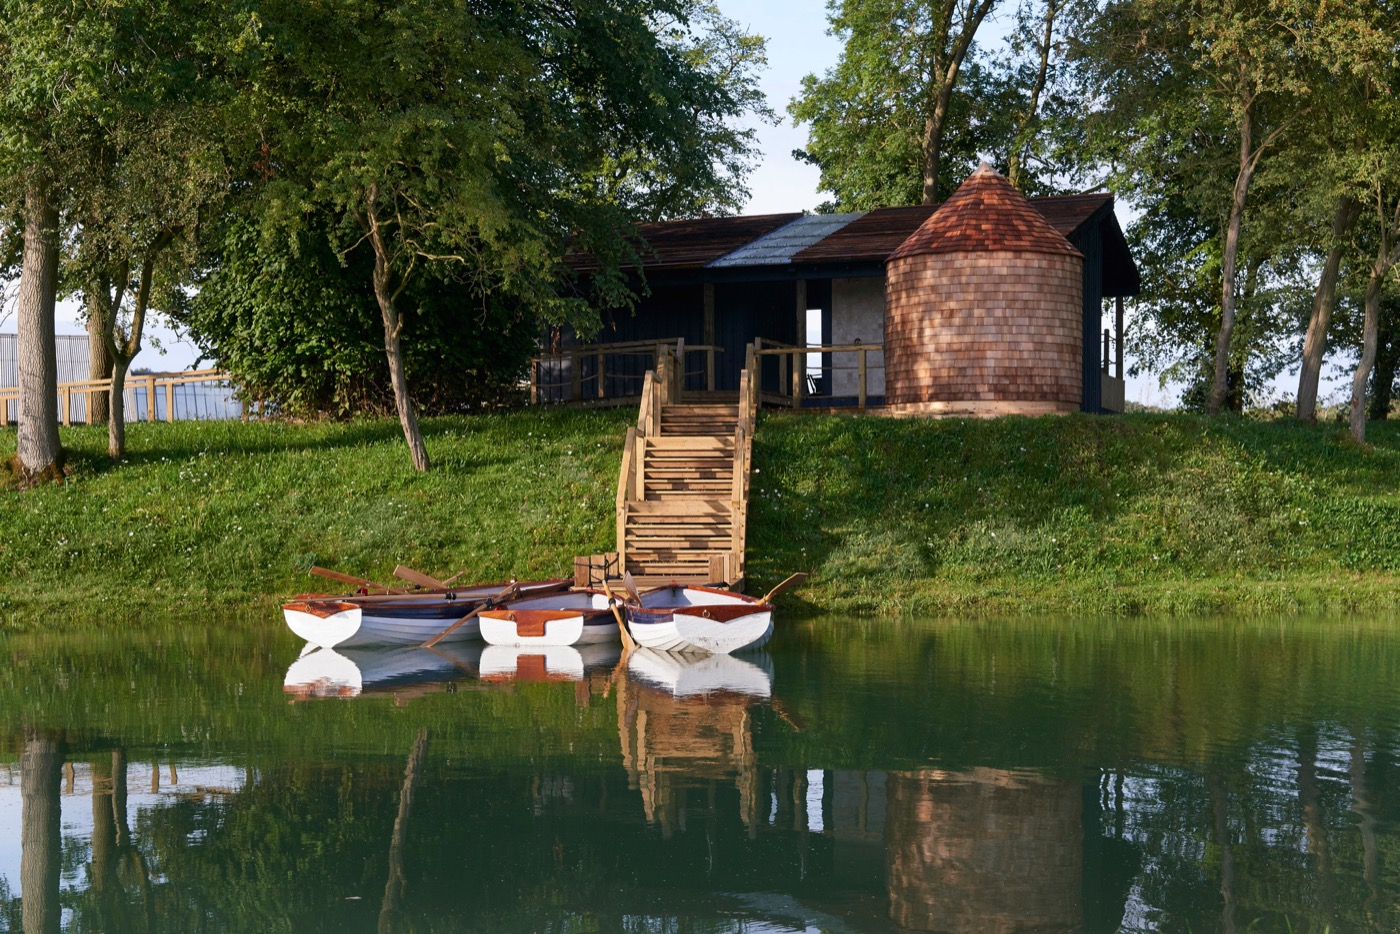 Our 24 hour retreat   5-6 May 2016   Find out more